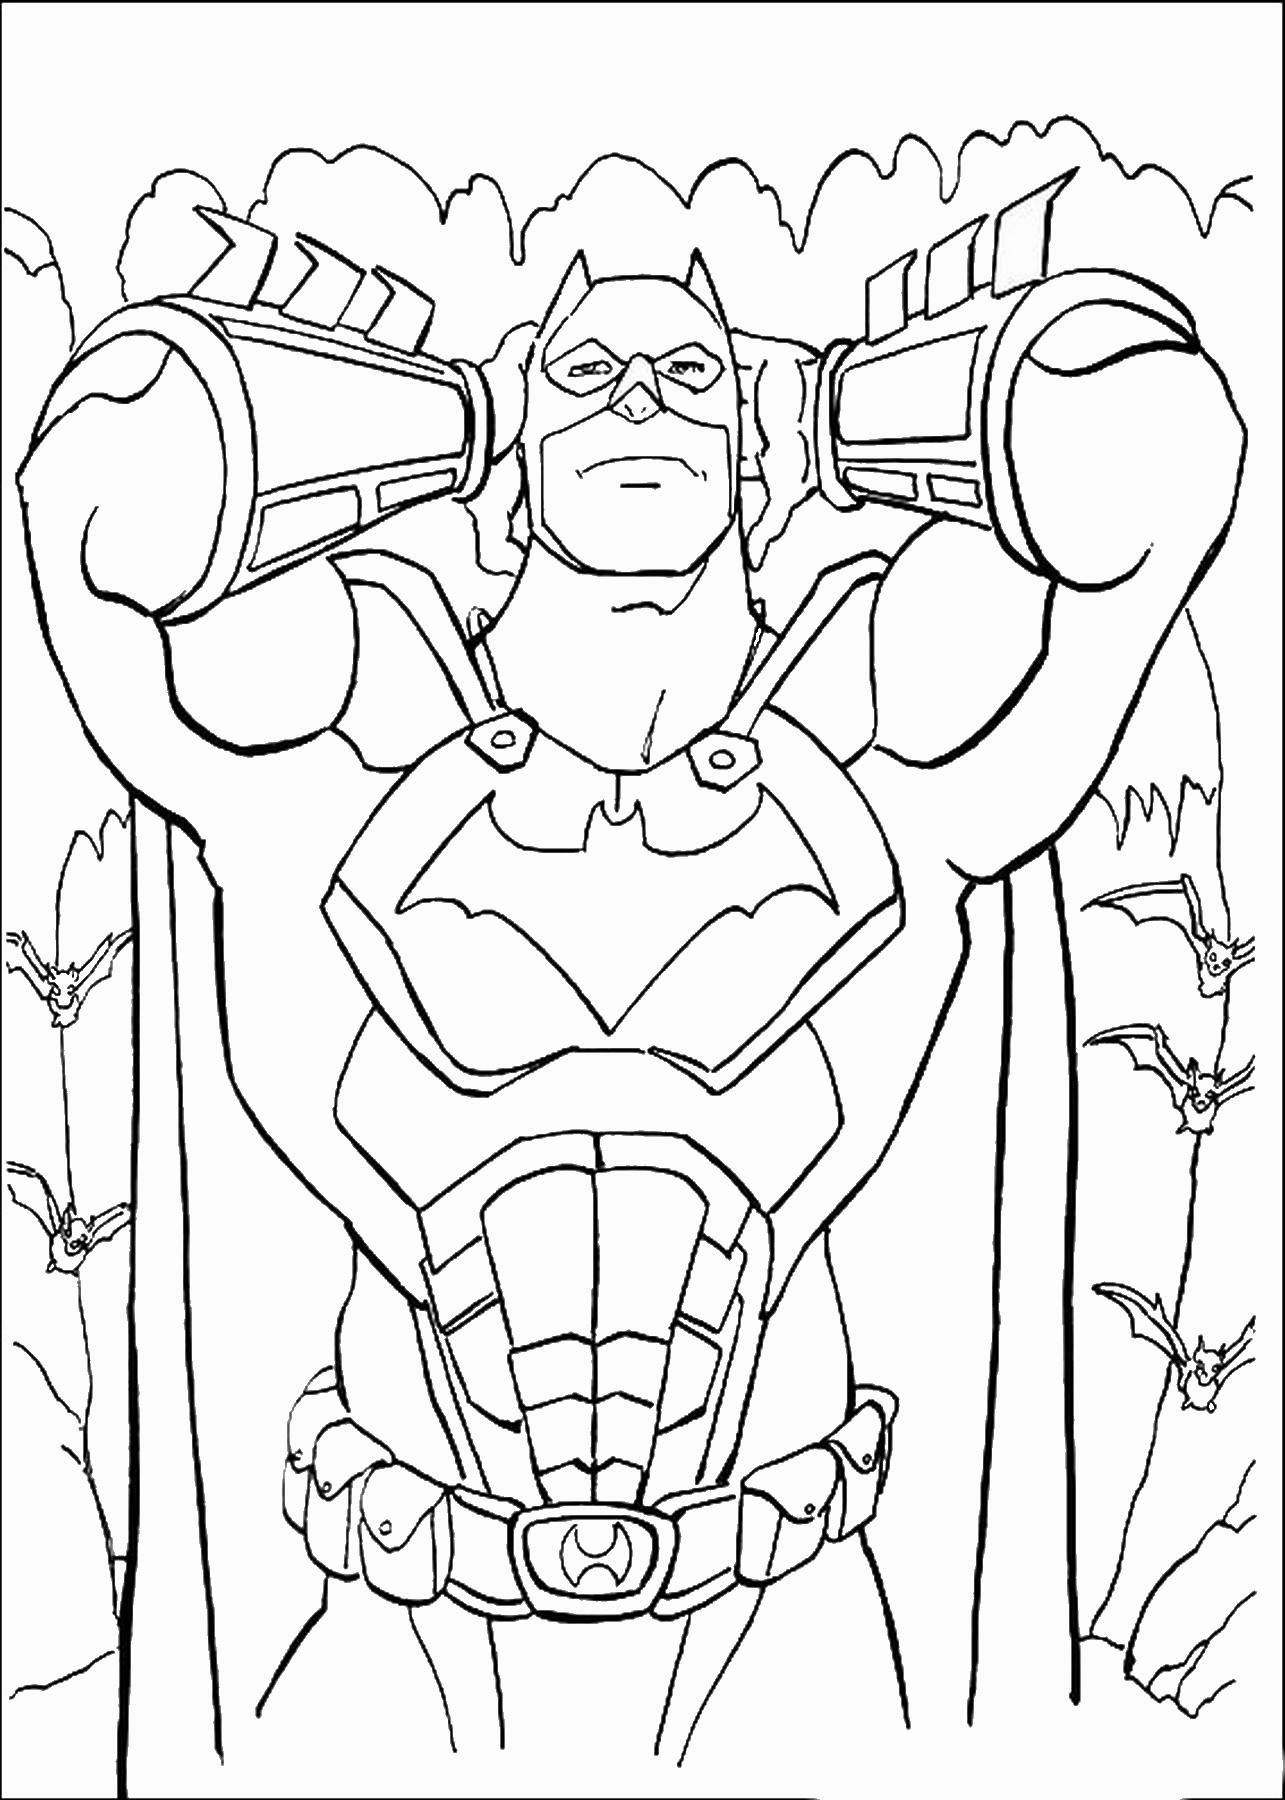 batmancoloring pages cartoon coloring pages batman coloring pages batmancoloring pages